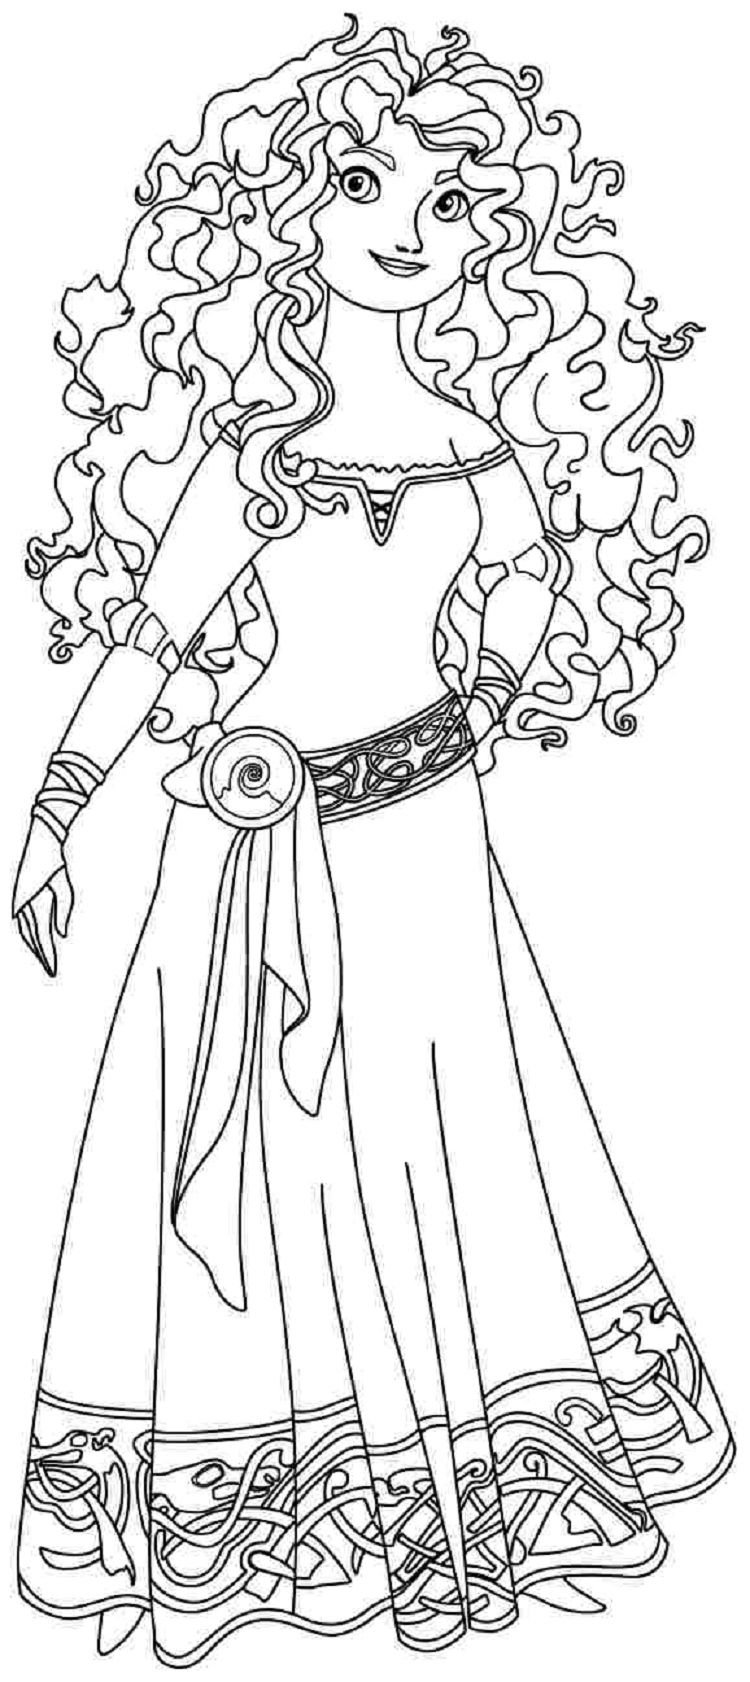 disney princess coloring pages merida Coloring Pages For